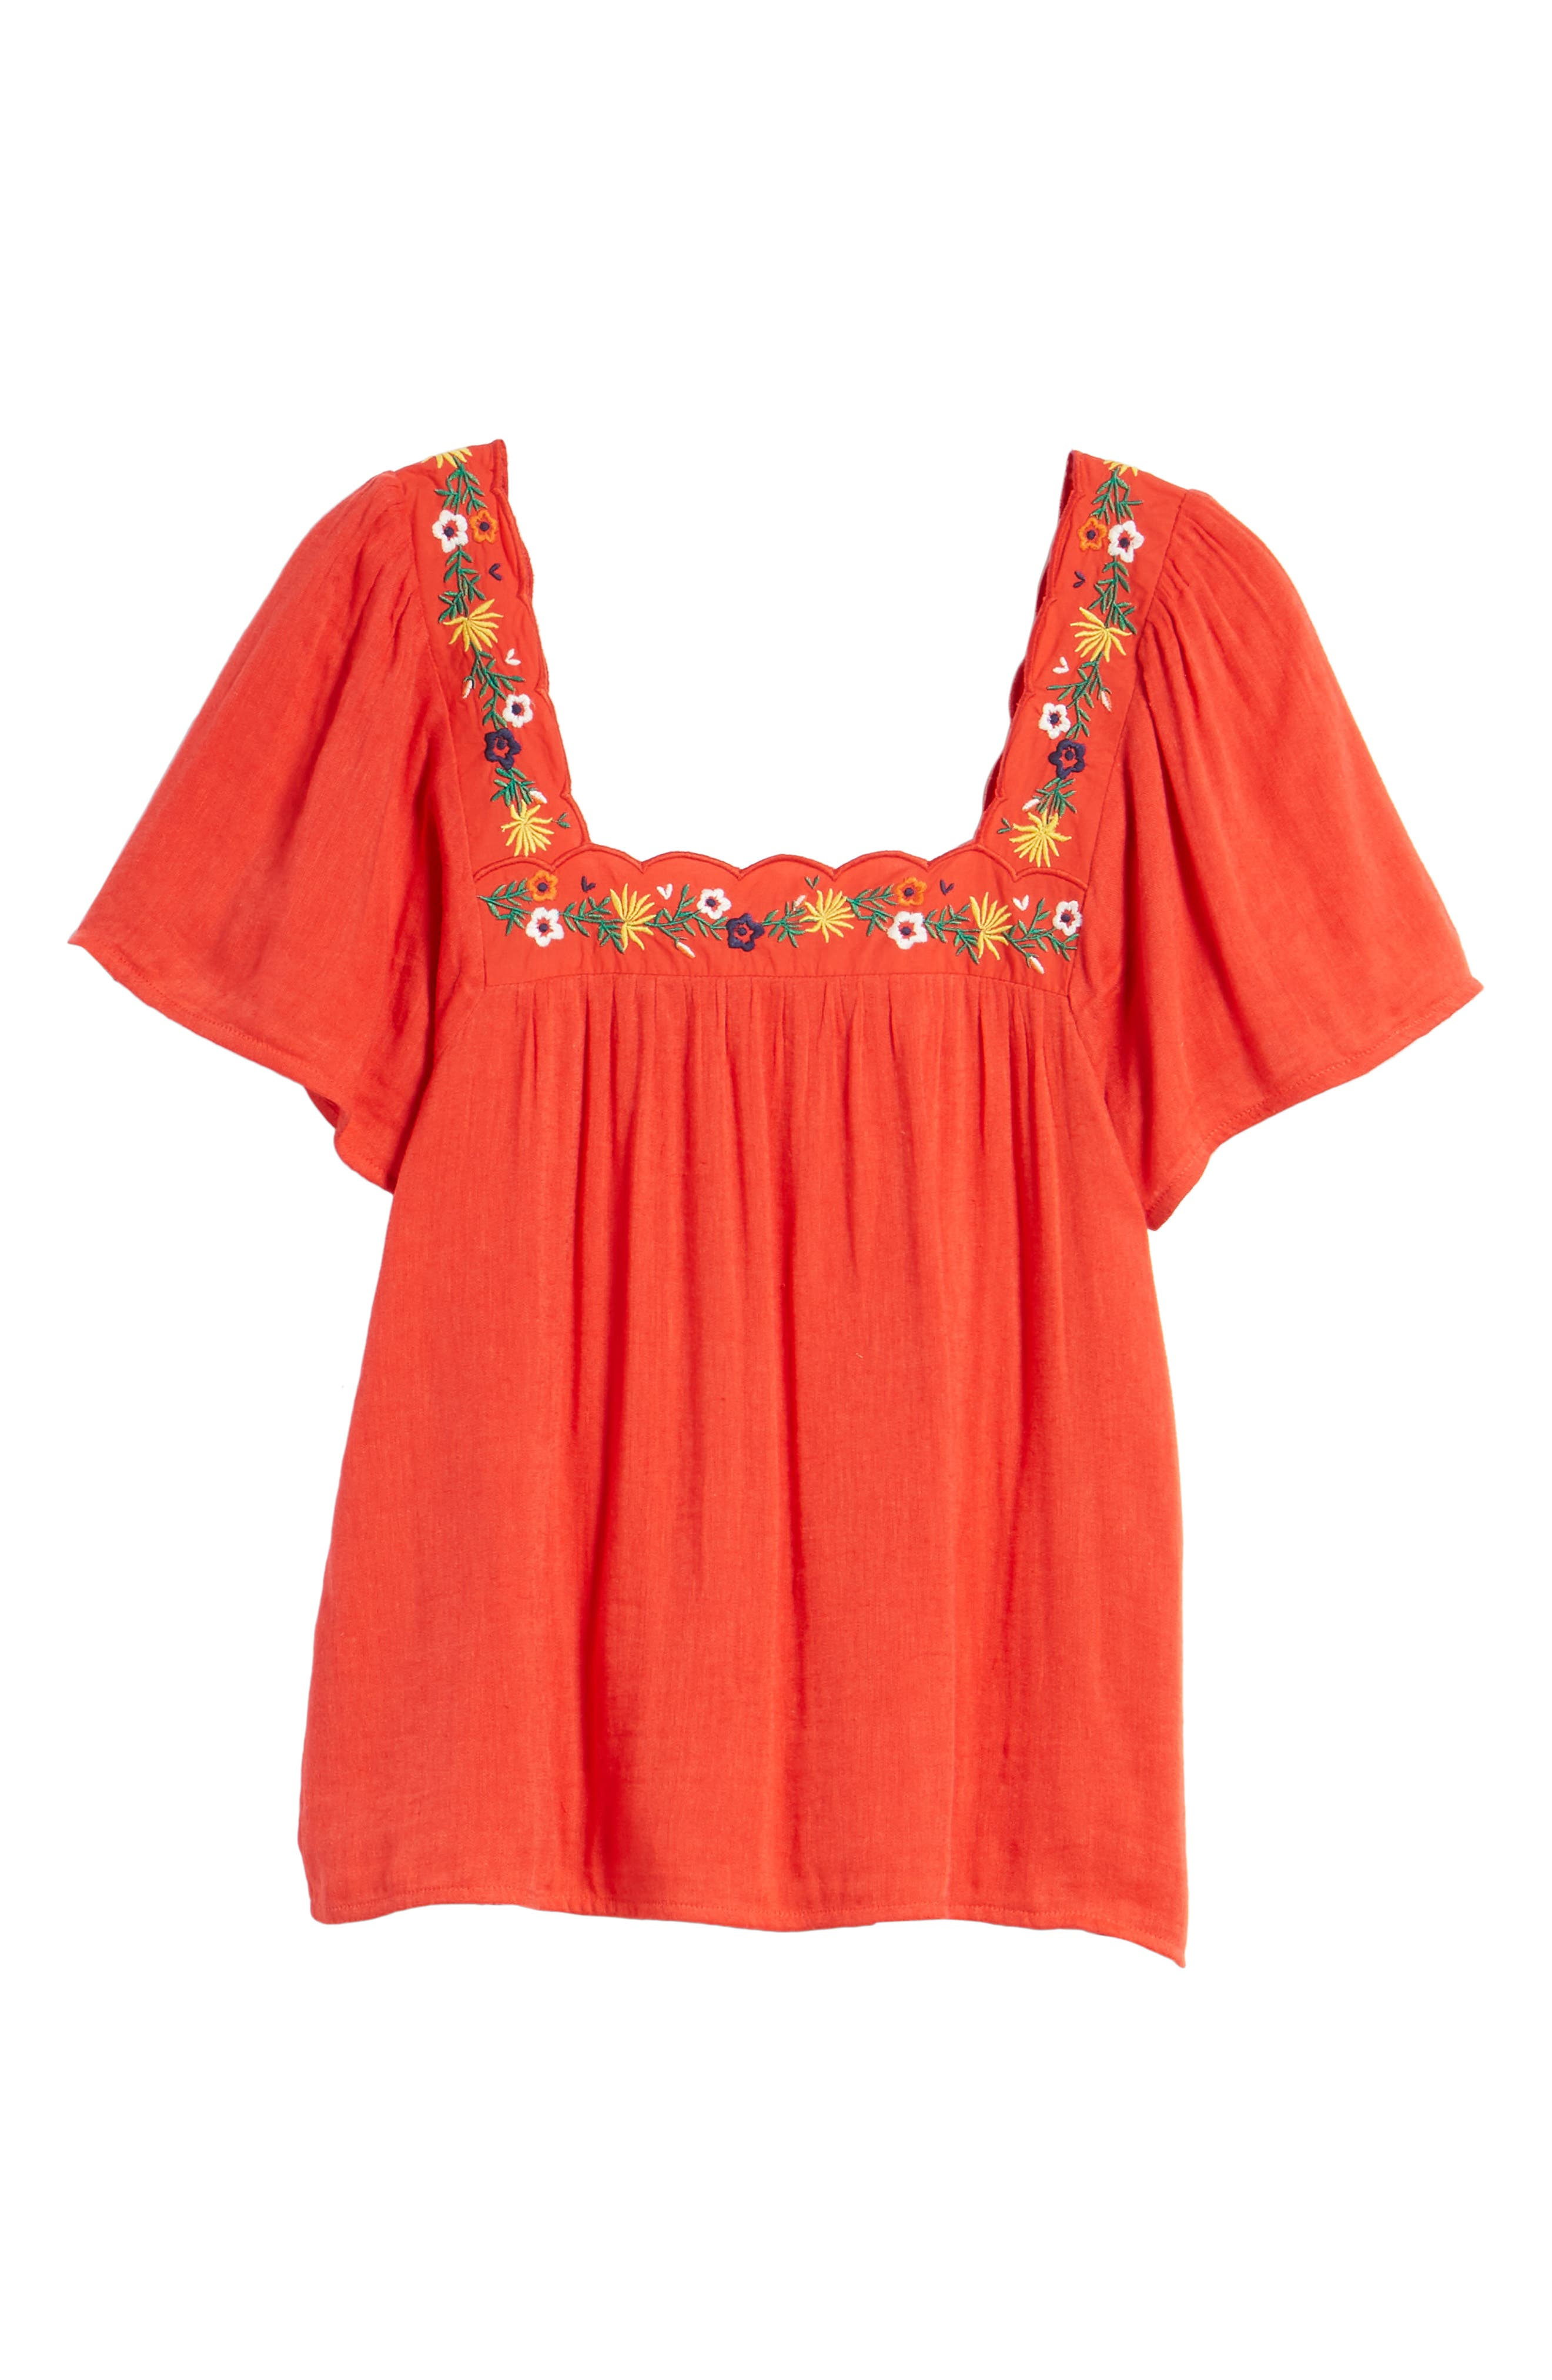 Bea Scalloped Top,                             Alternate thumbnail 7, color,                             Coral Red